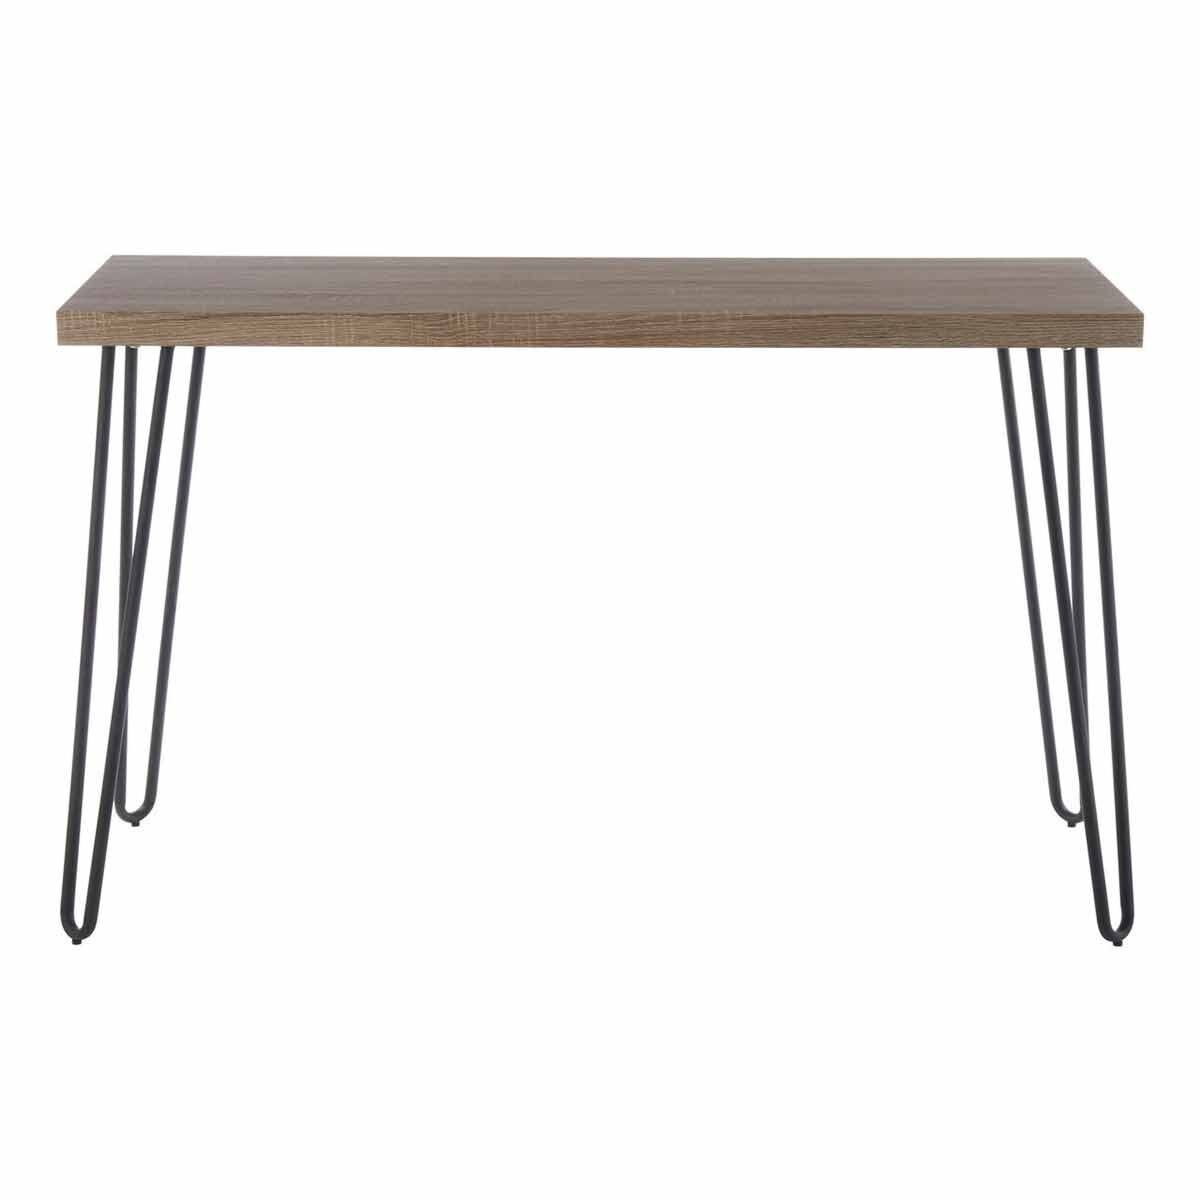 Interiors by PH Console Table with Hairpin Legs